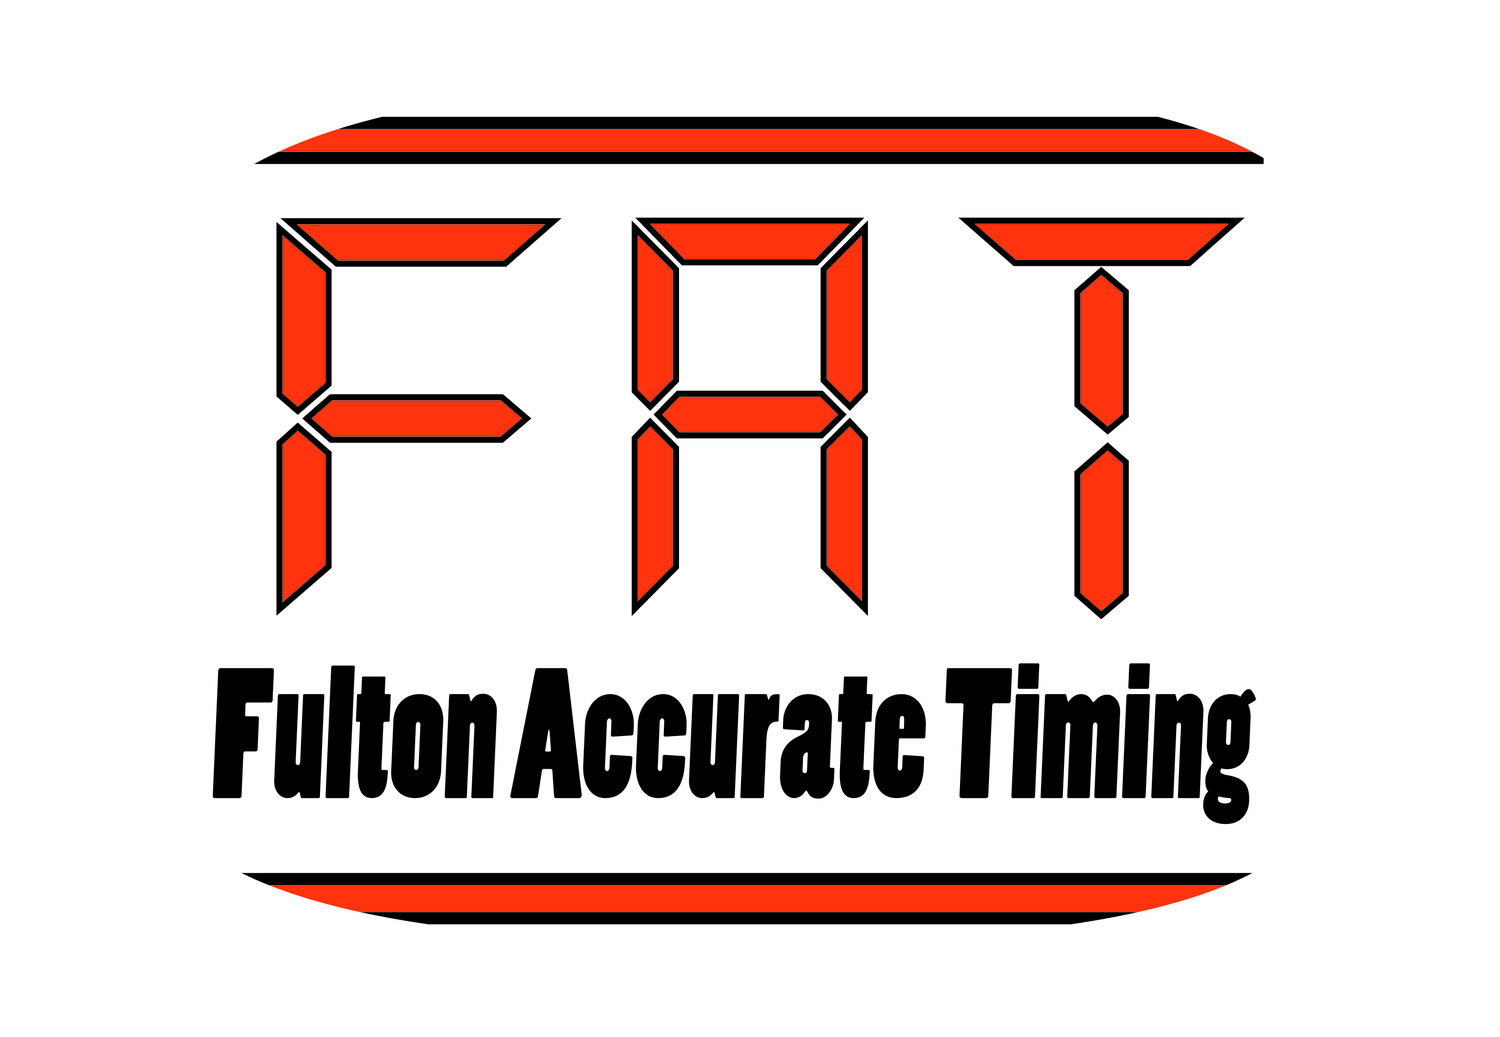 Schedule — Fulton Accurate Timing